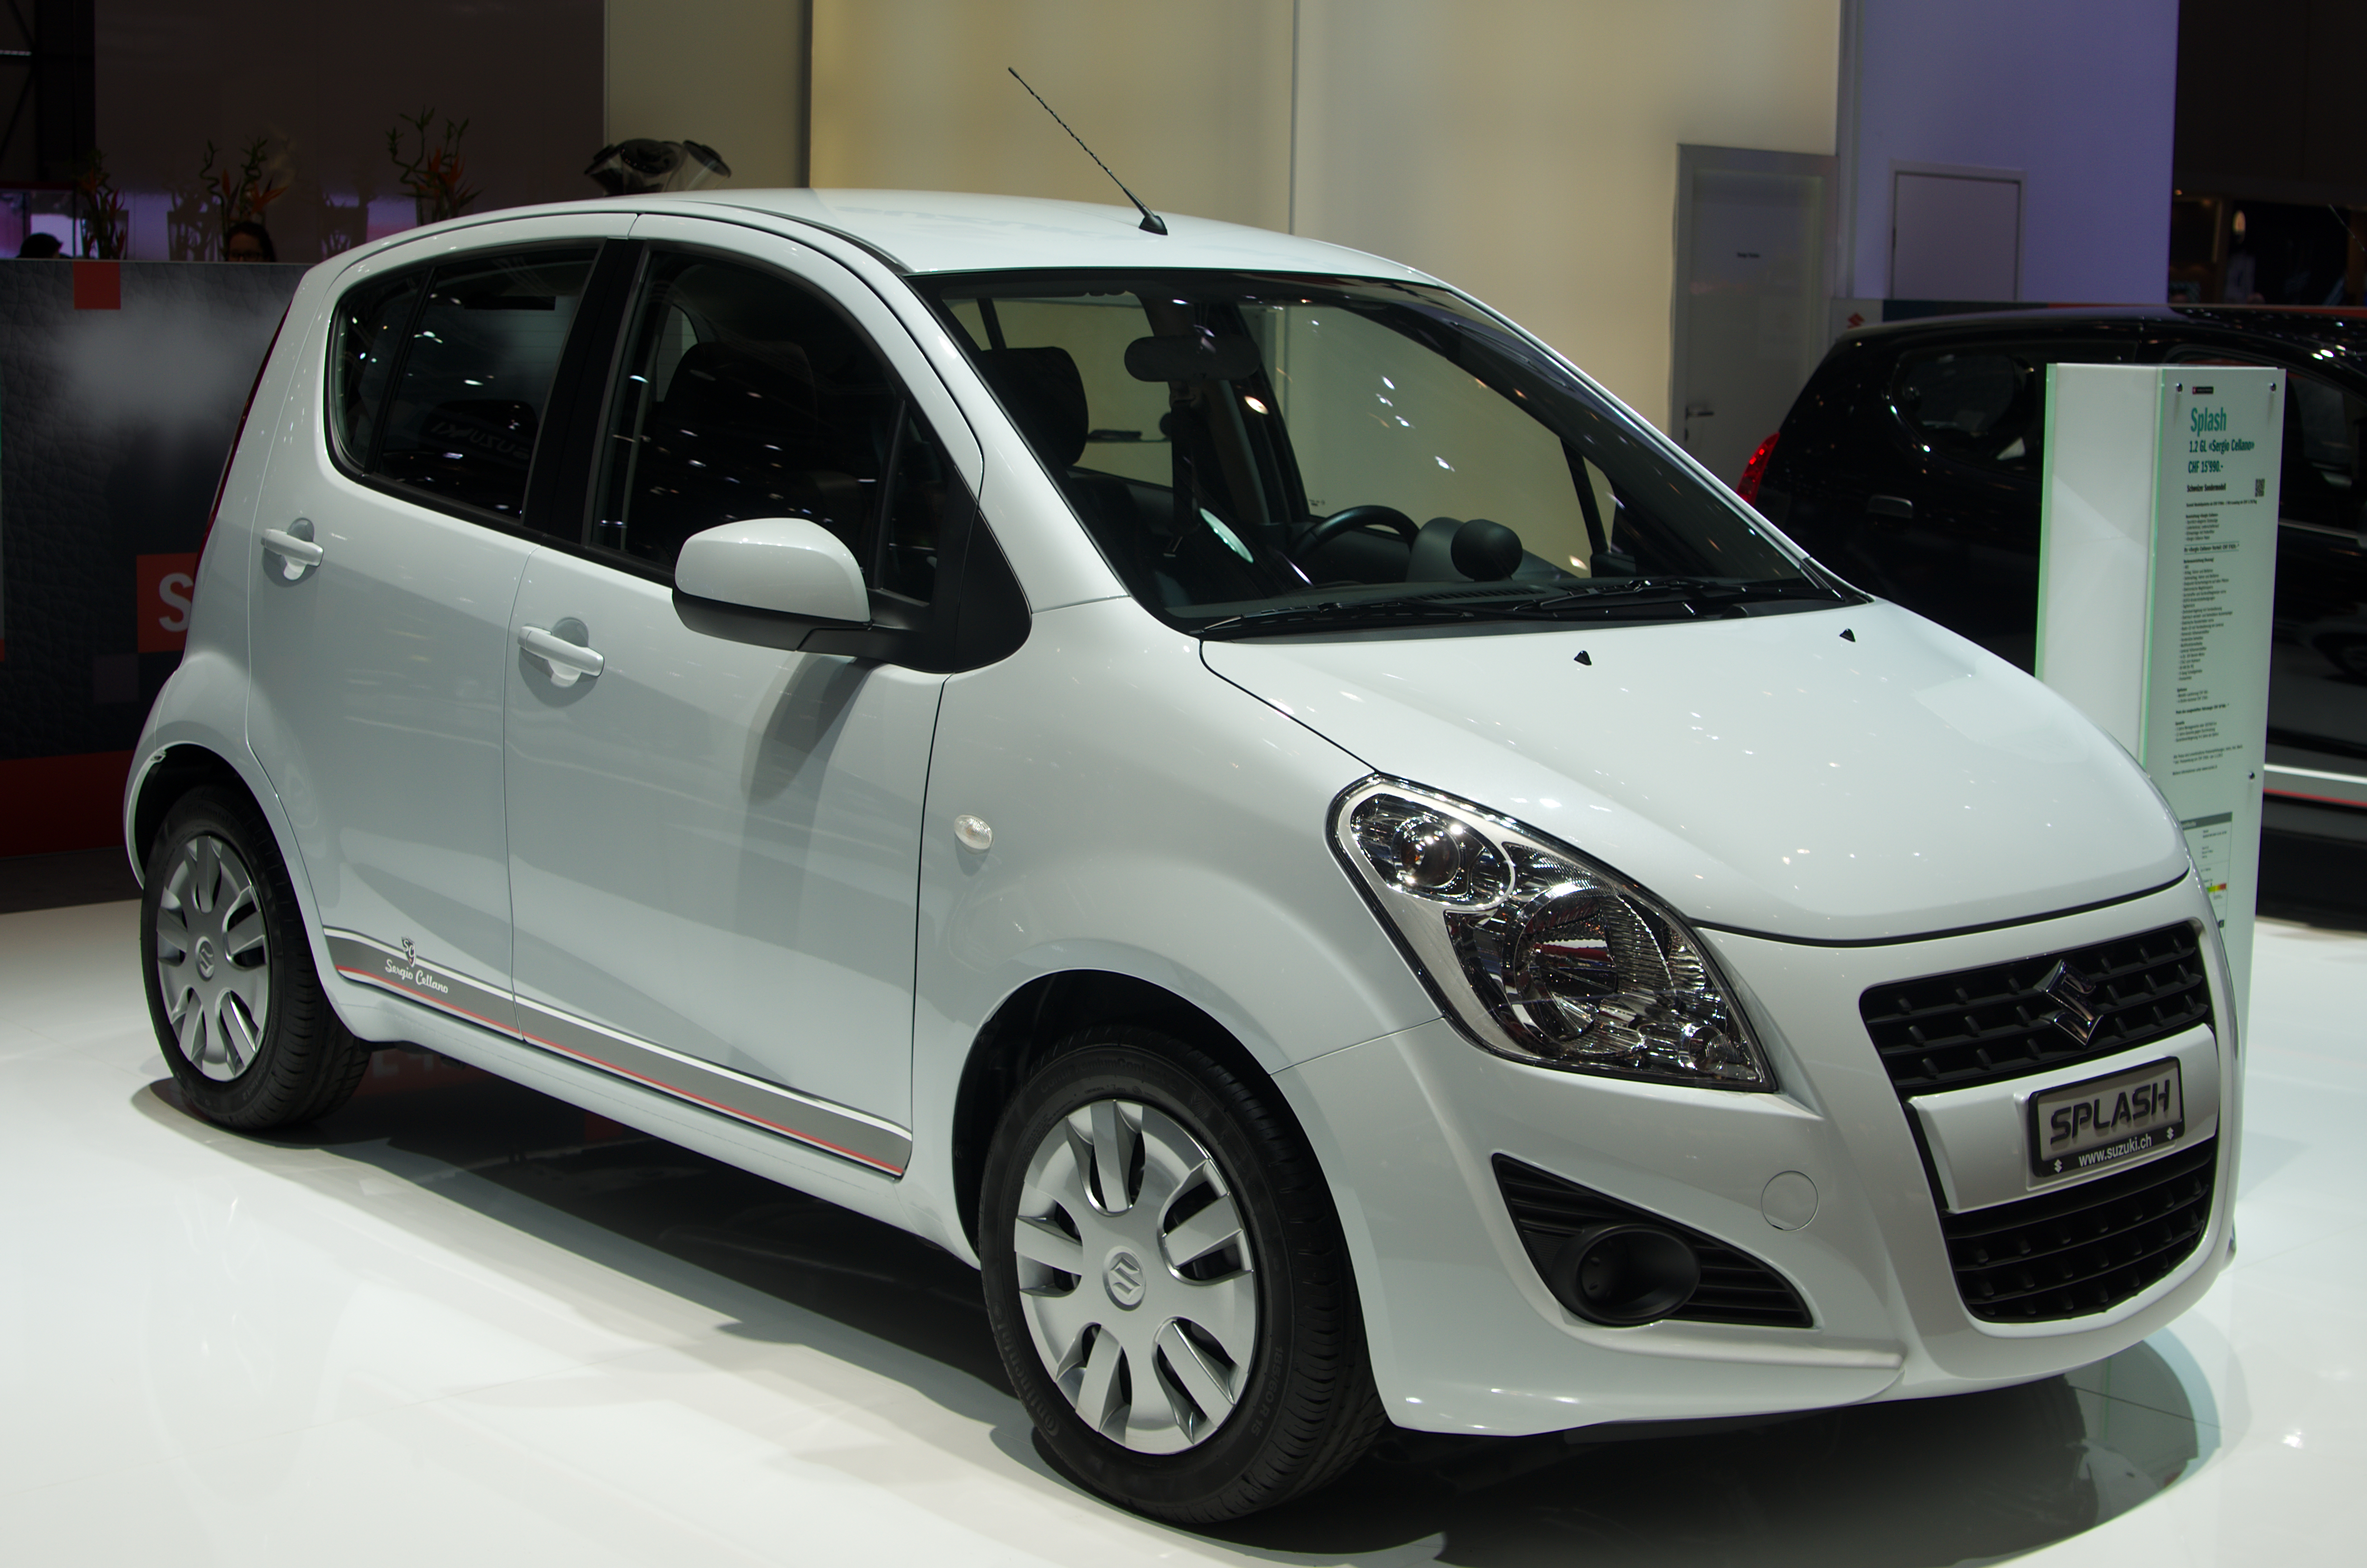 Fiche Technique Suzuki Splash  L'argus